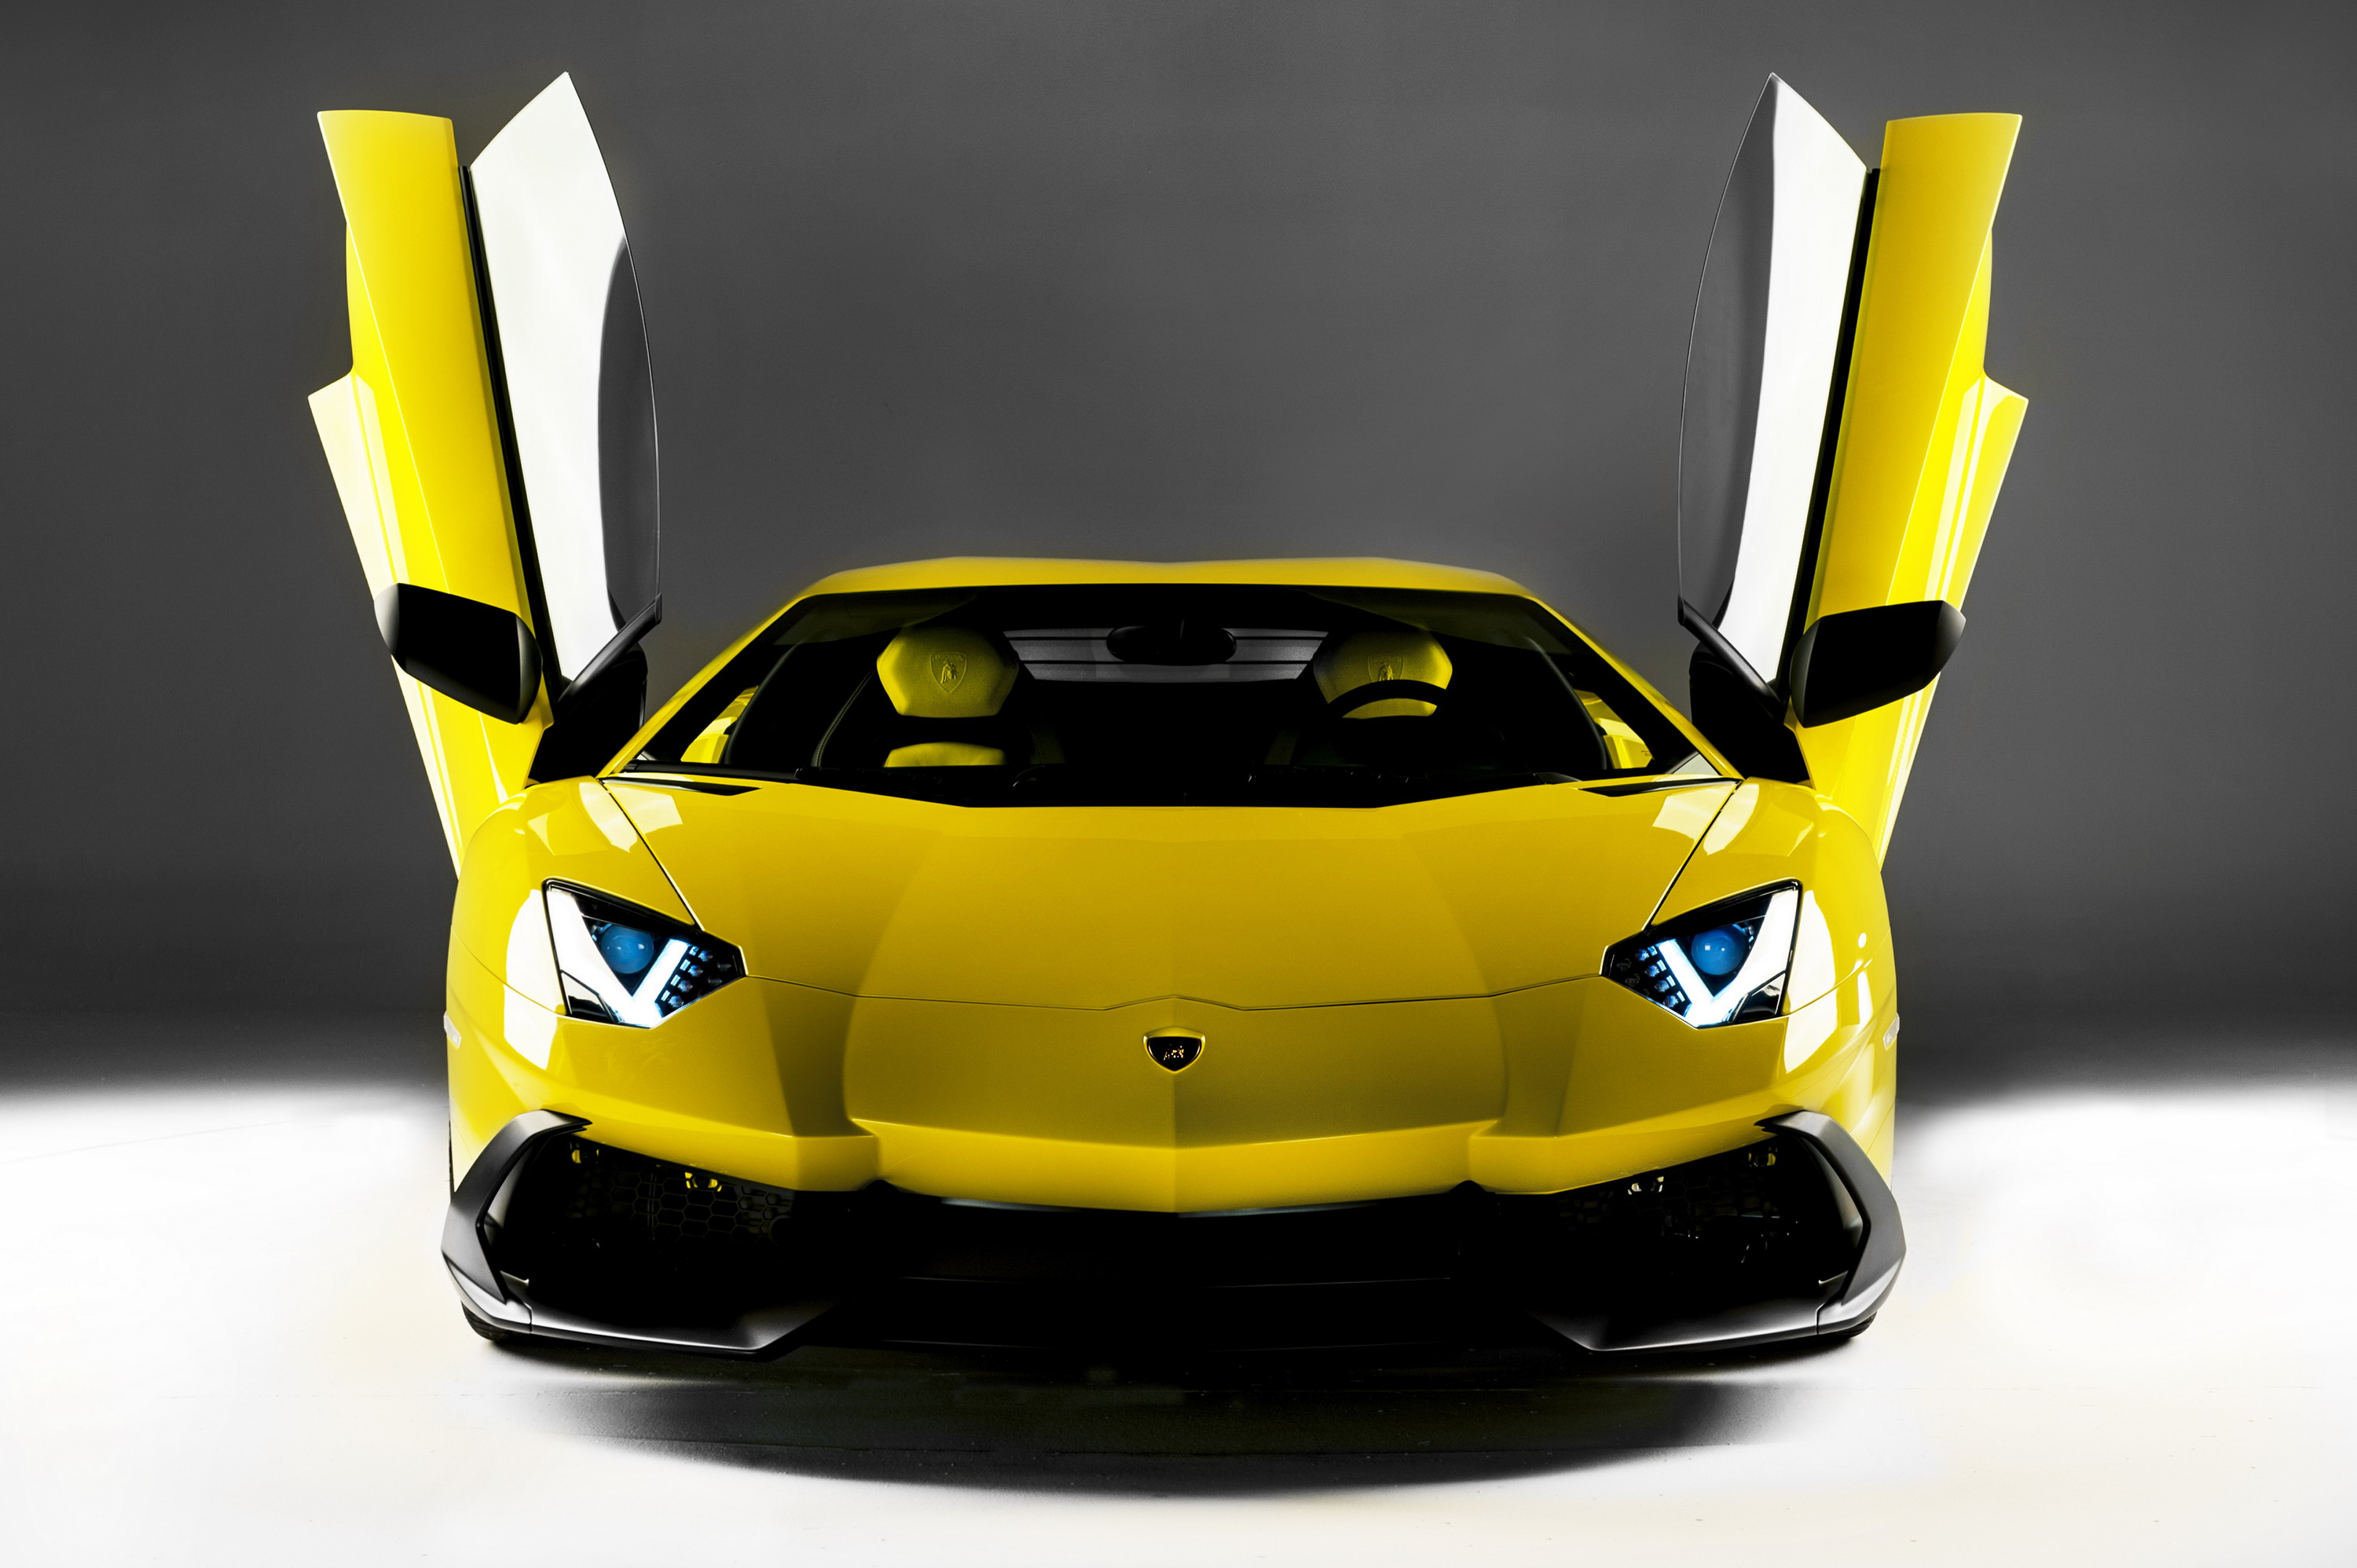 earlier this year it was rumored that lamborghini would unveil a special aventador lp720 4 at the 2013 geneva motor show as a celebration to its 50th